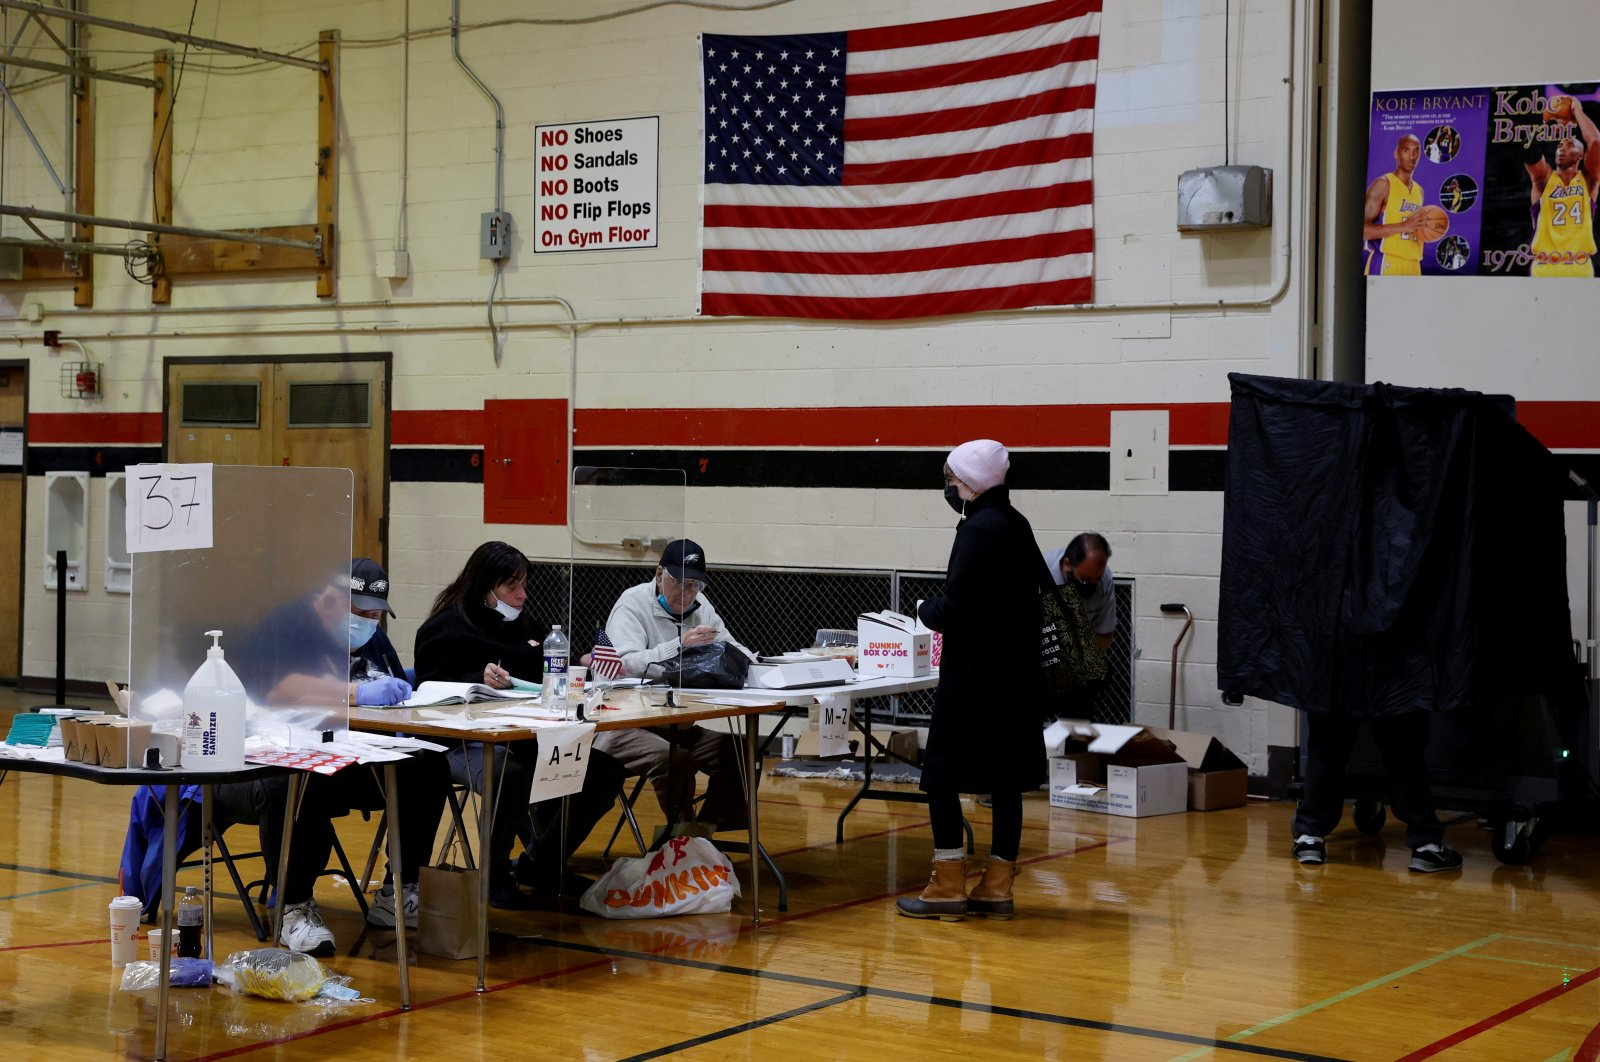 A voter and election workers wear protective masks on Election Day in South Philadelphia High School, in Philadelphia, Pennsylvania, U.S., Nov. 3, 2020. (Reuters Photo)